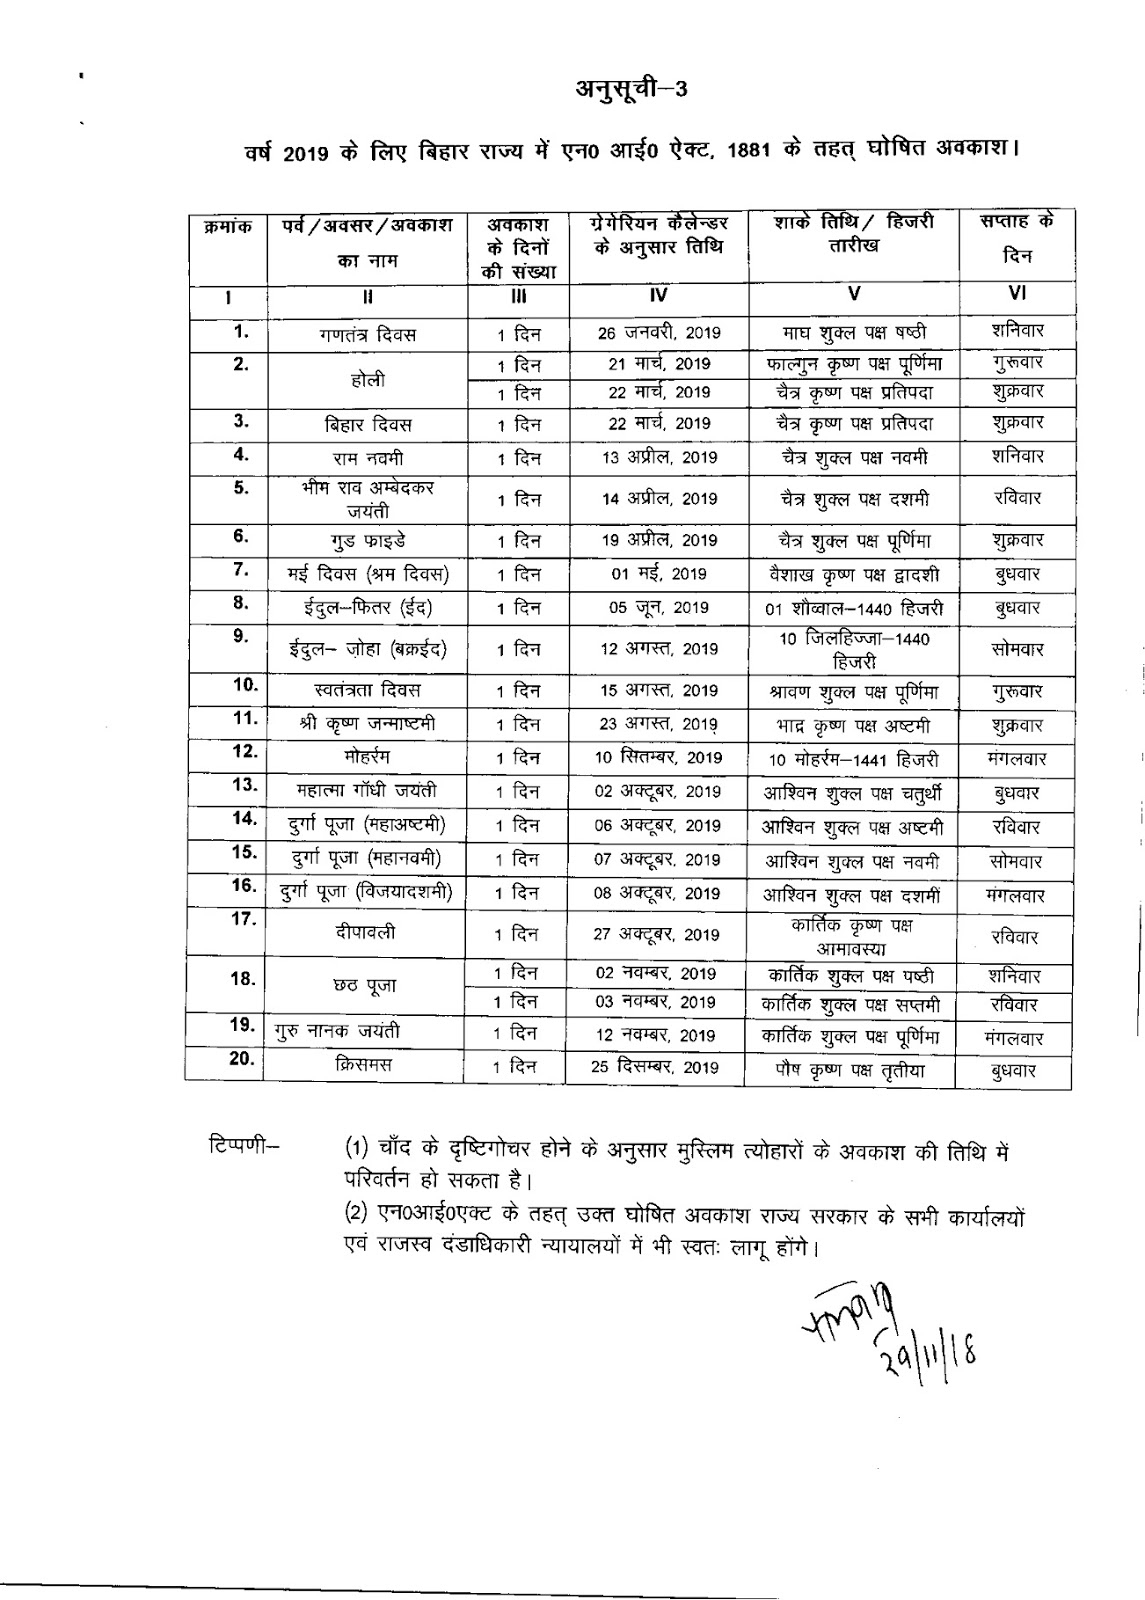 Bihar Government Calendar 2019 #educratsweb with regard to Bihar Govt.calendar 2020